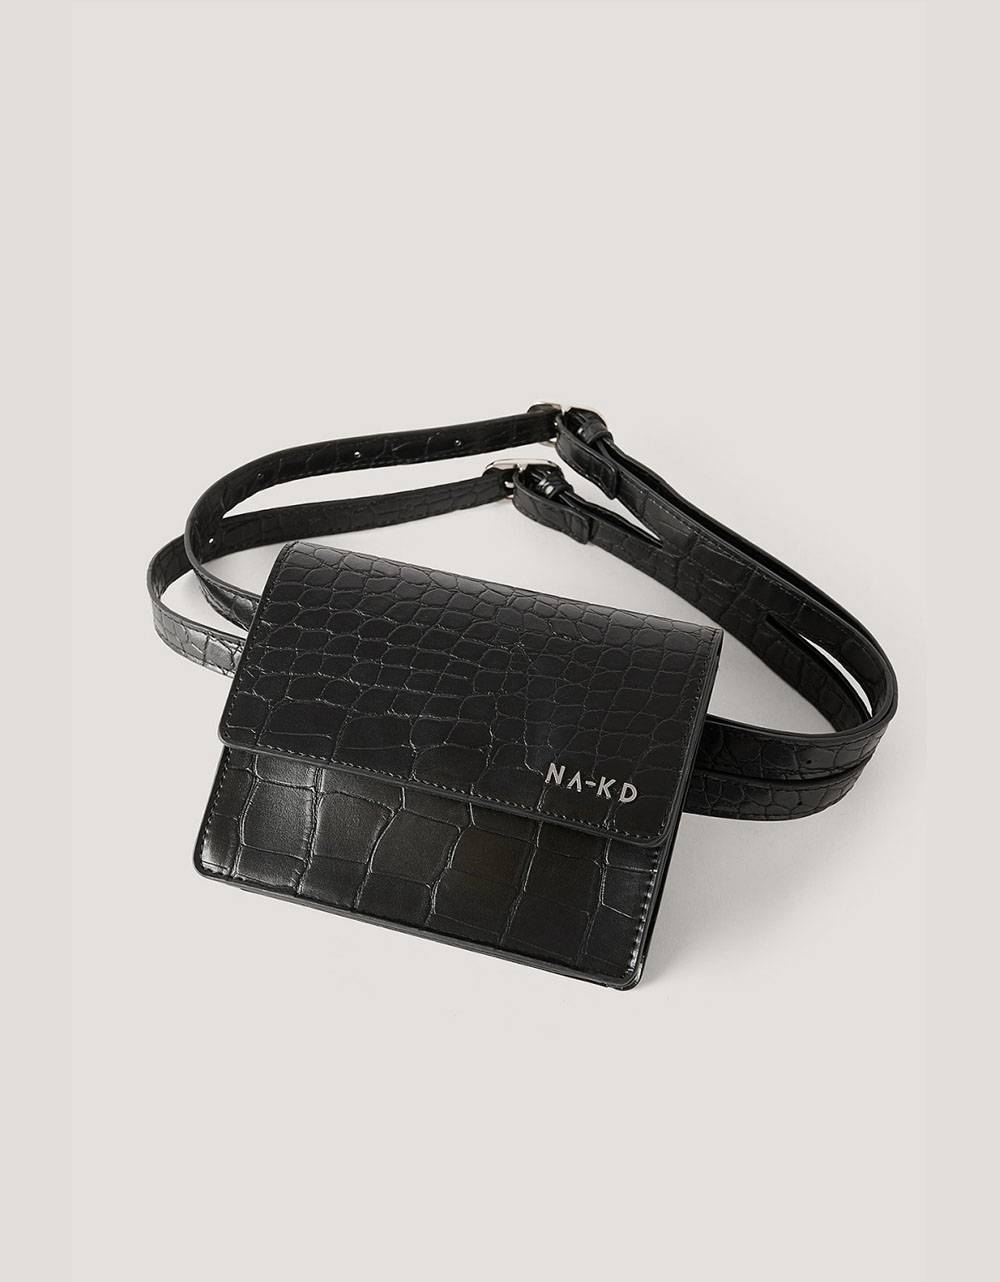 NA-KD mini fanny pack - black NA-KD Bags 34,43 €